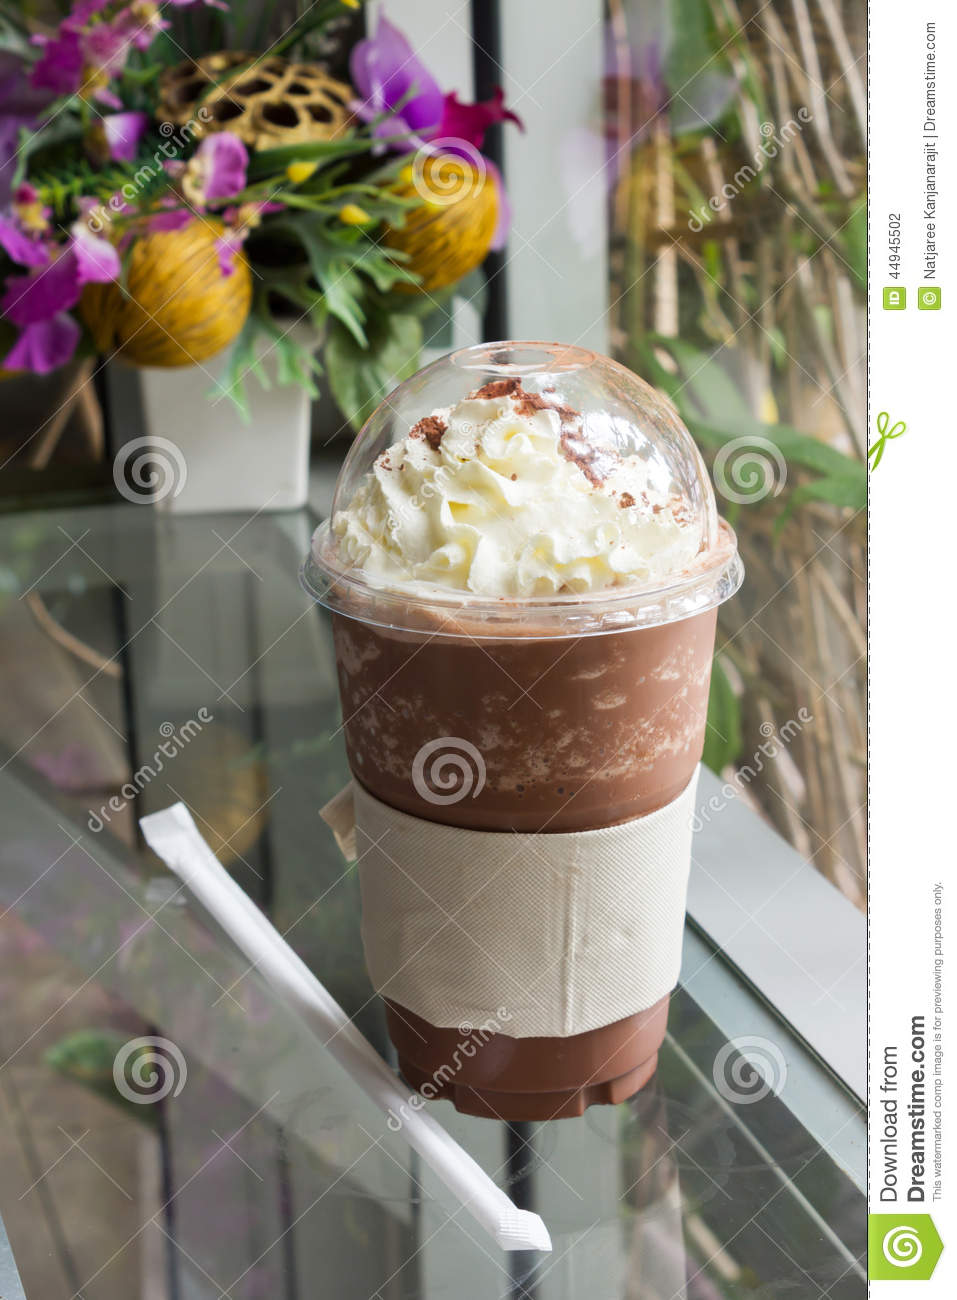 how to make a chocolate frappe with ice cream